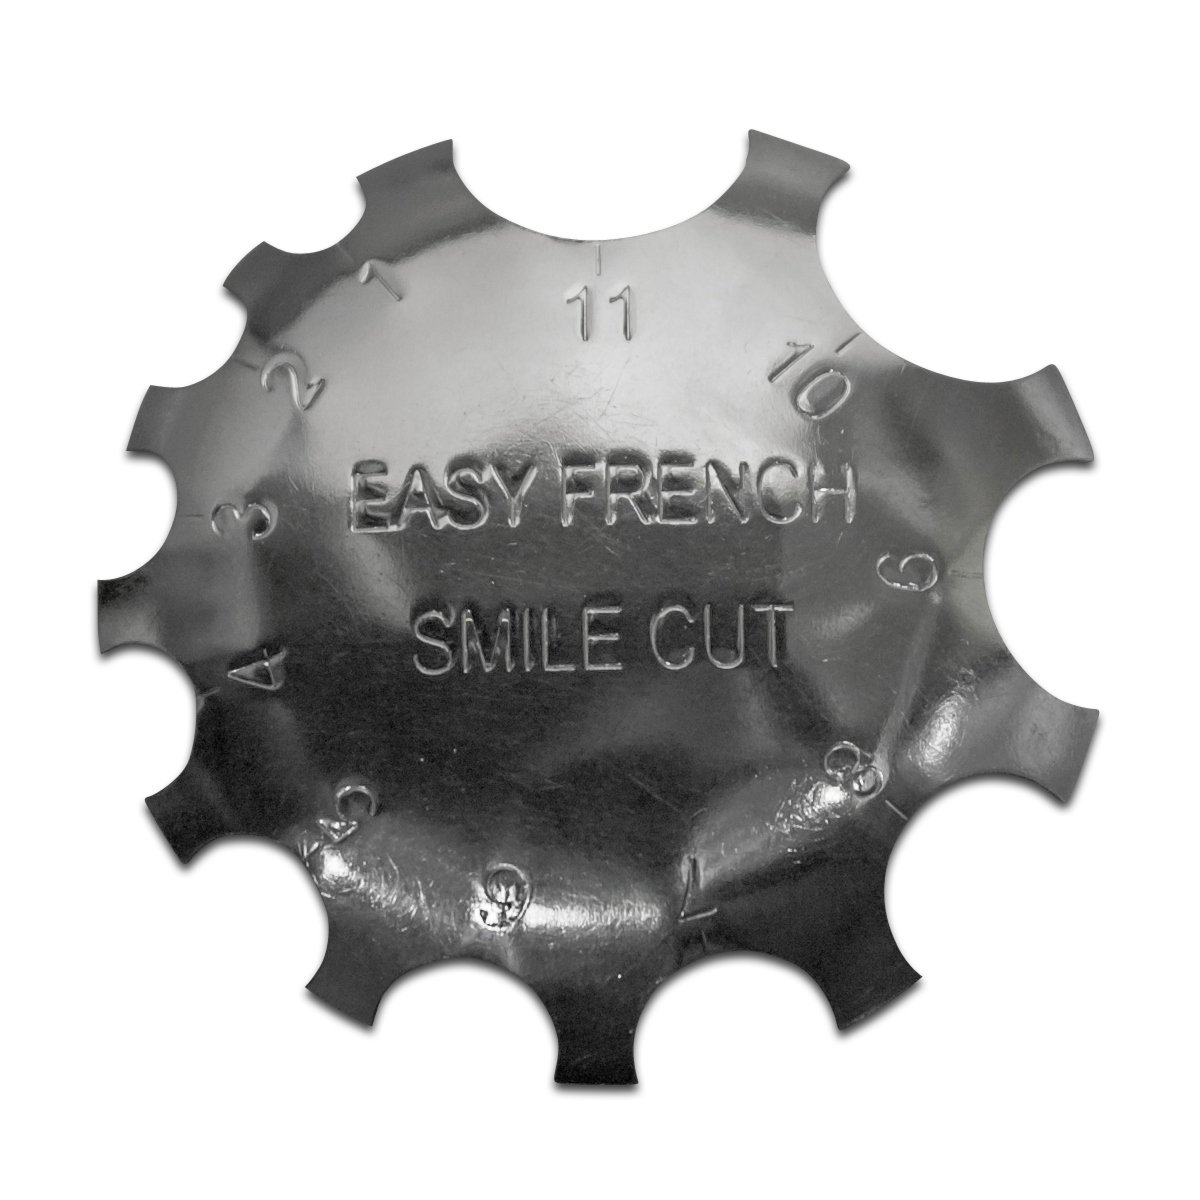 Edge Trimmer Easy French SMILE CUT Schablone Cutter für Acryl Modellage UV Gel